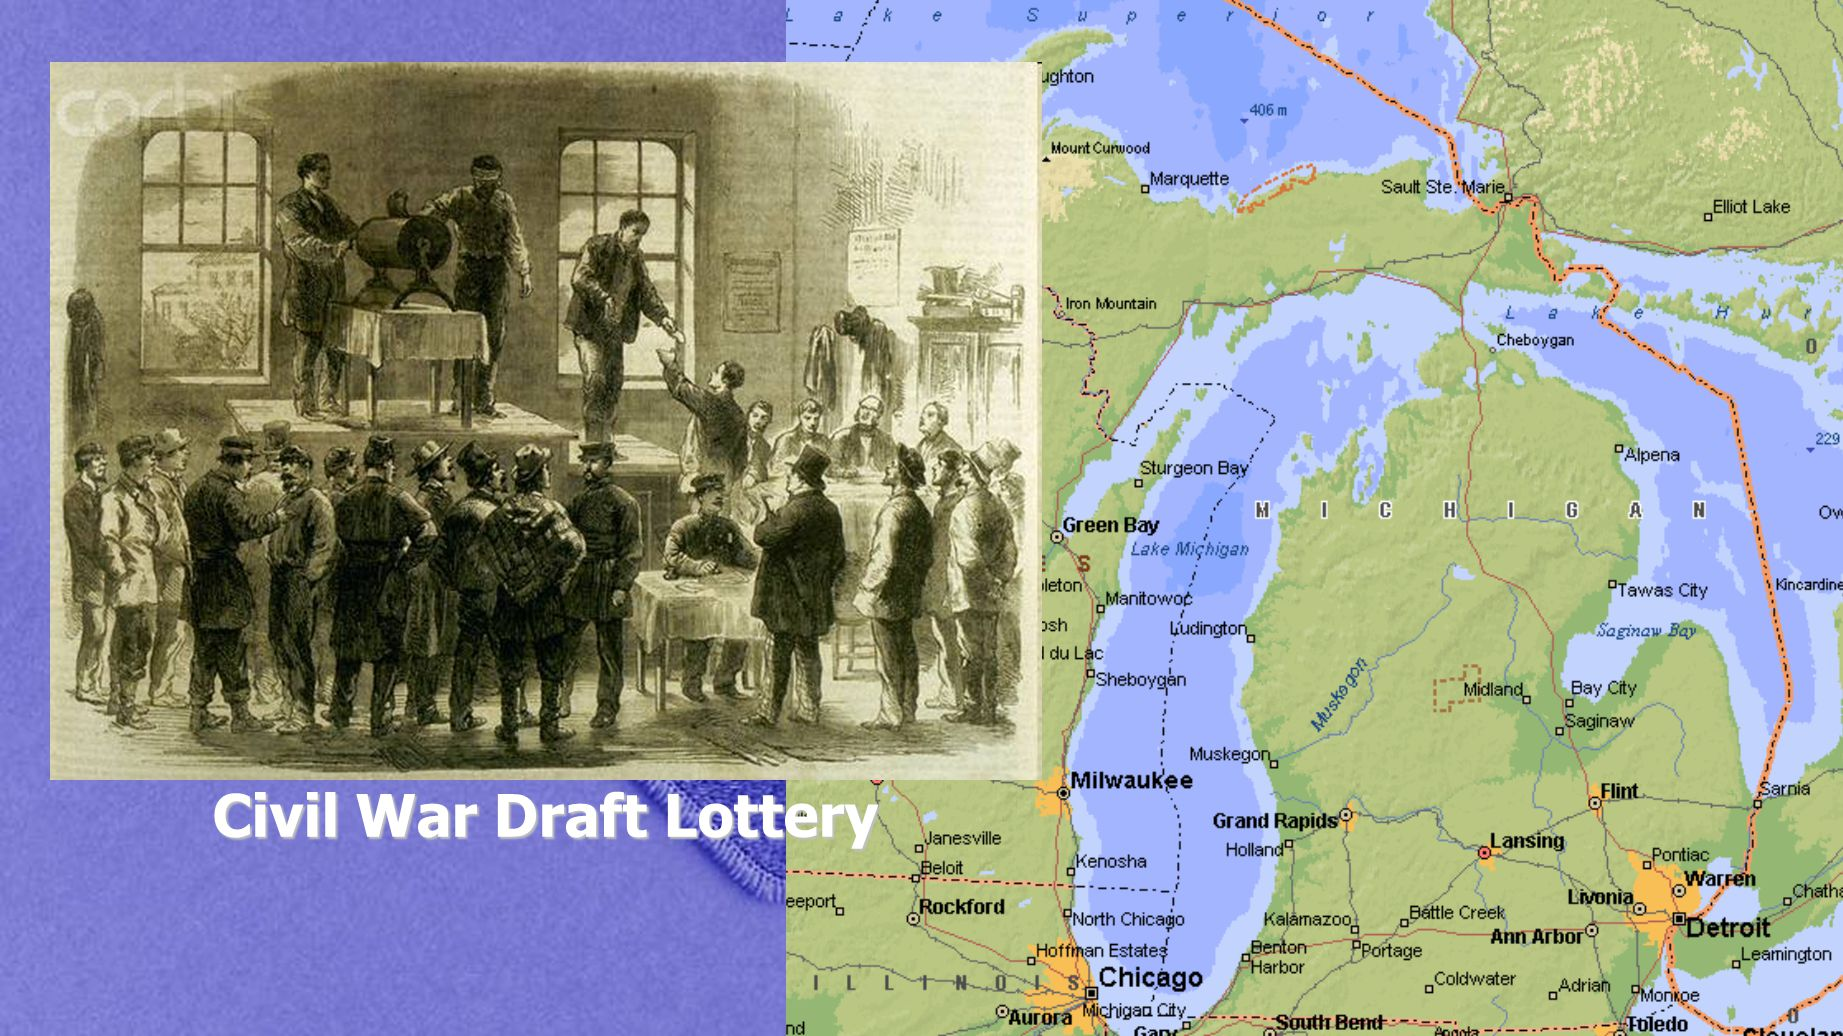 Civil War Draft Lottery